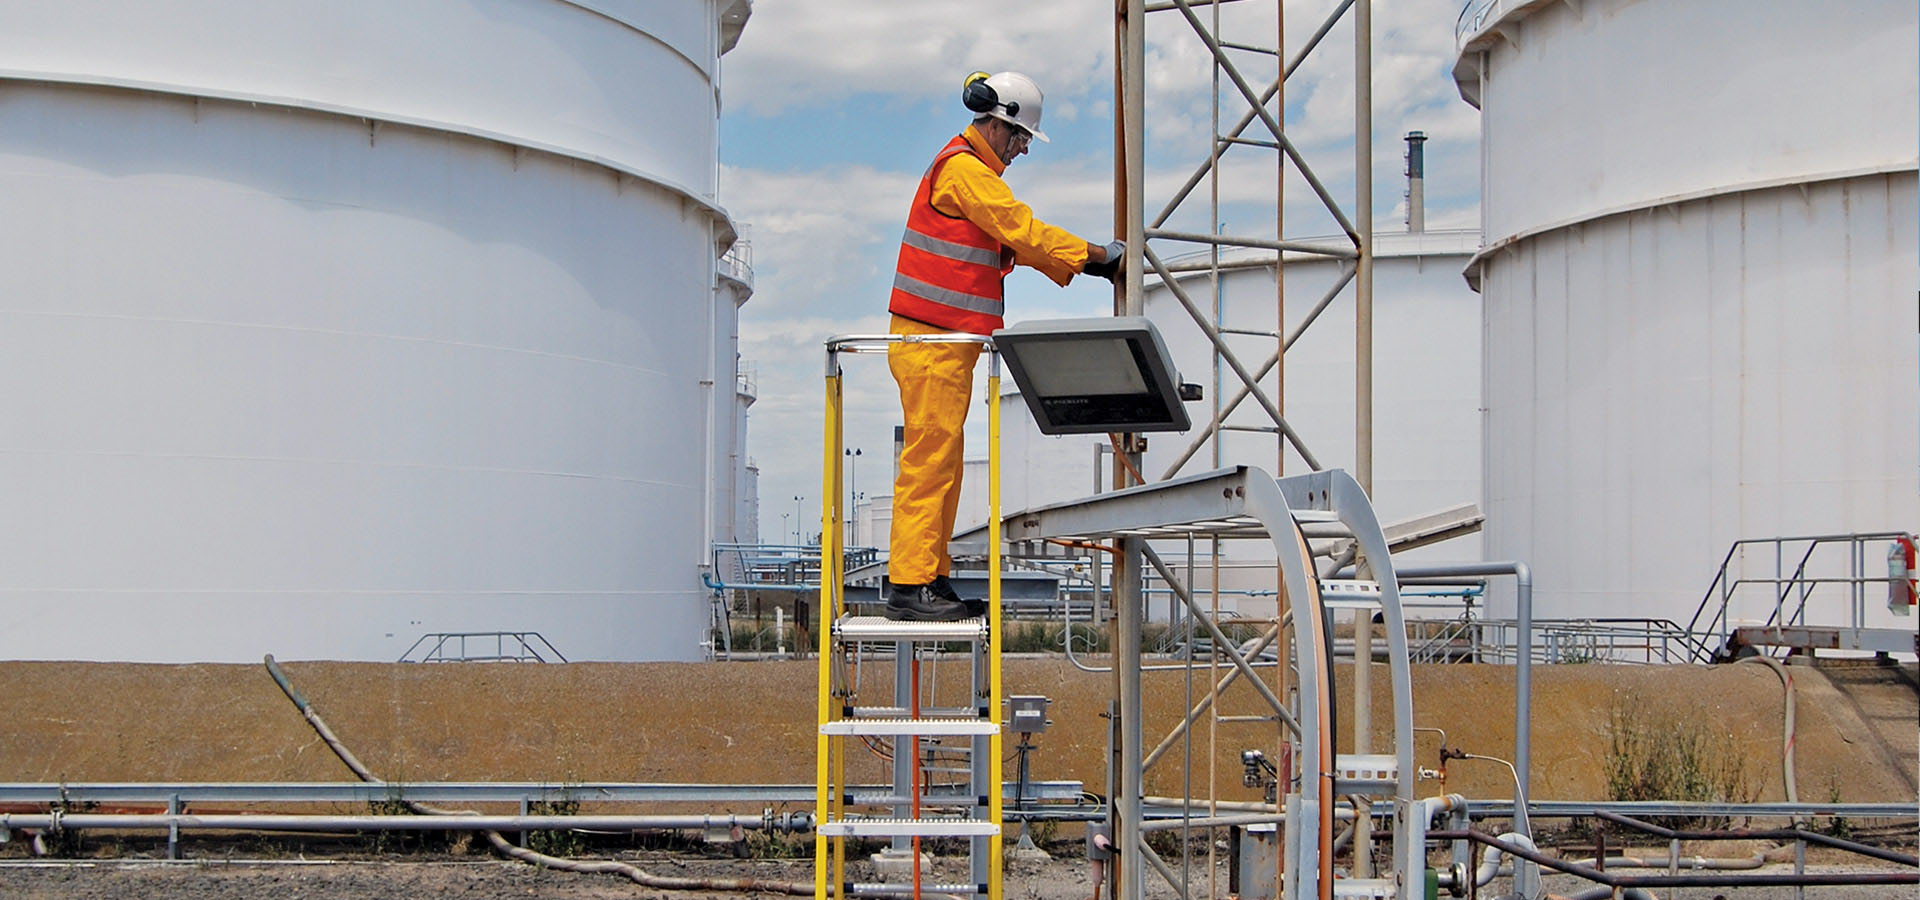 A refinery worker standing on the Branach fibreglass WorkMaster 550mm Step Platform Ladder.